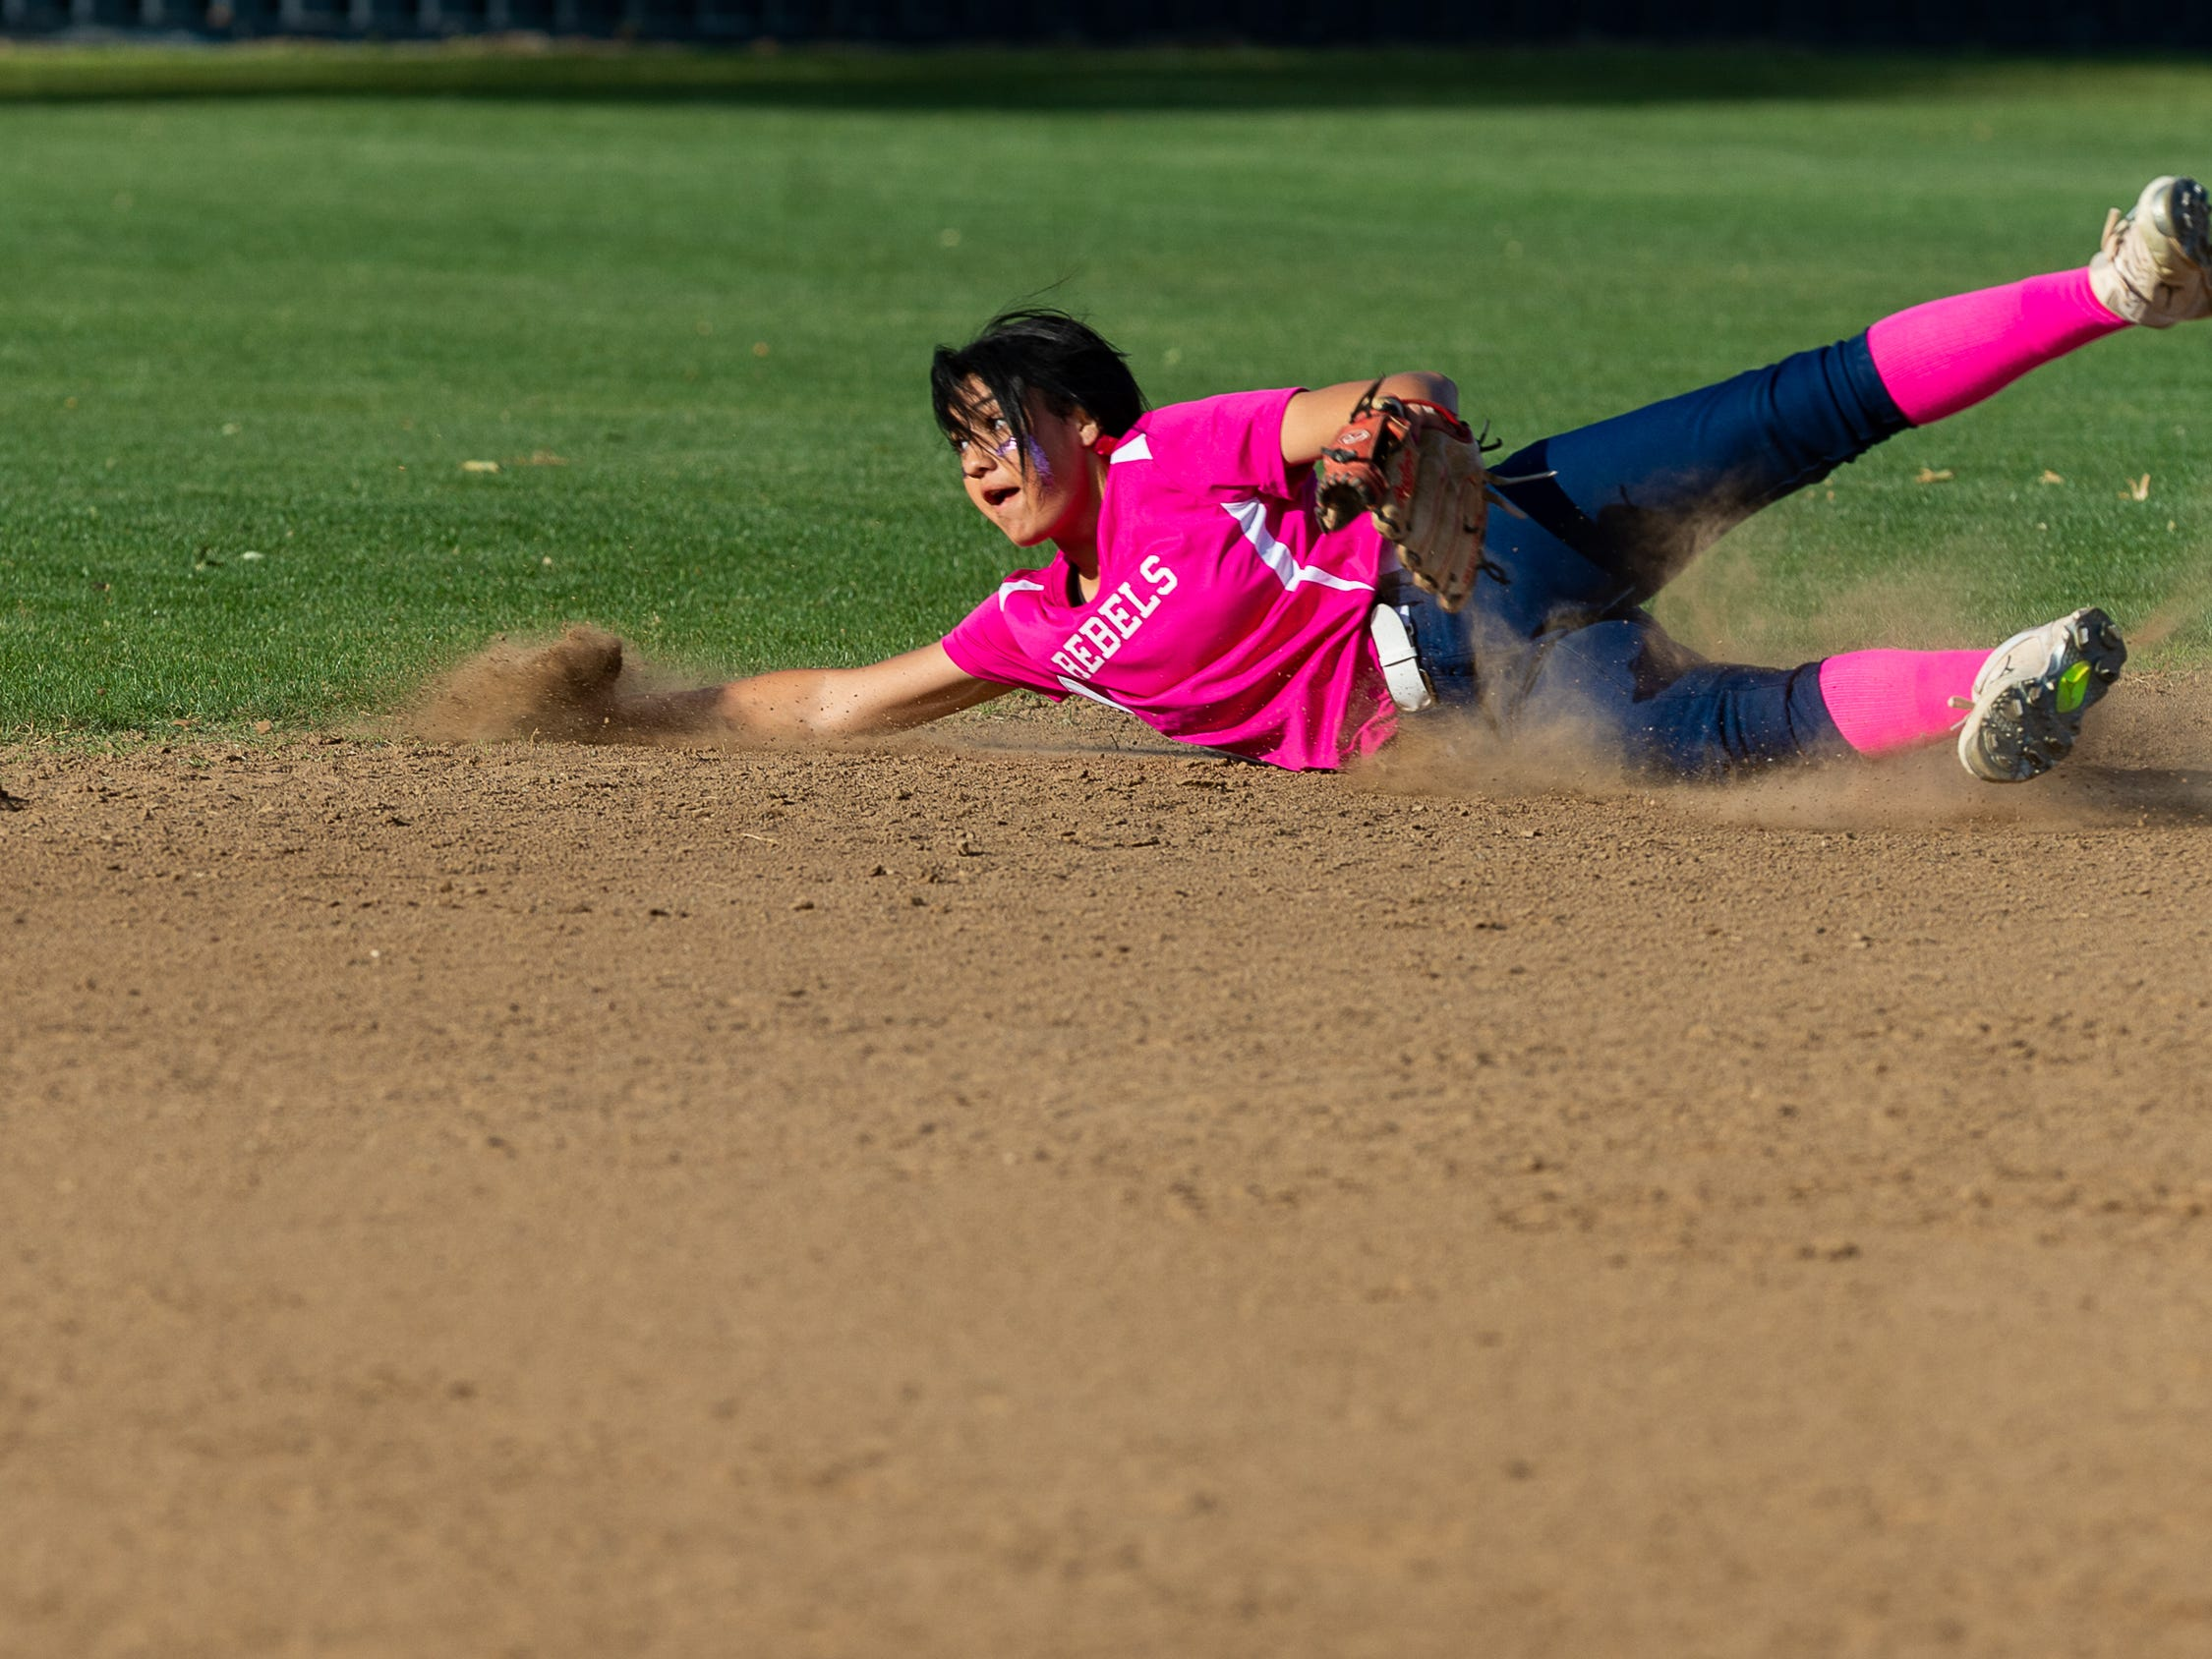 Rebels second baseman Vyctorhea Romero dives for a ball as Teurlings Catholic host St Thomas More Softball. Tuesday, April 2, 2019.